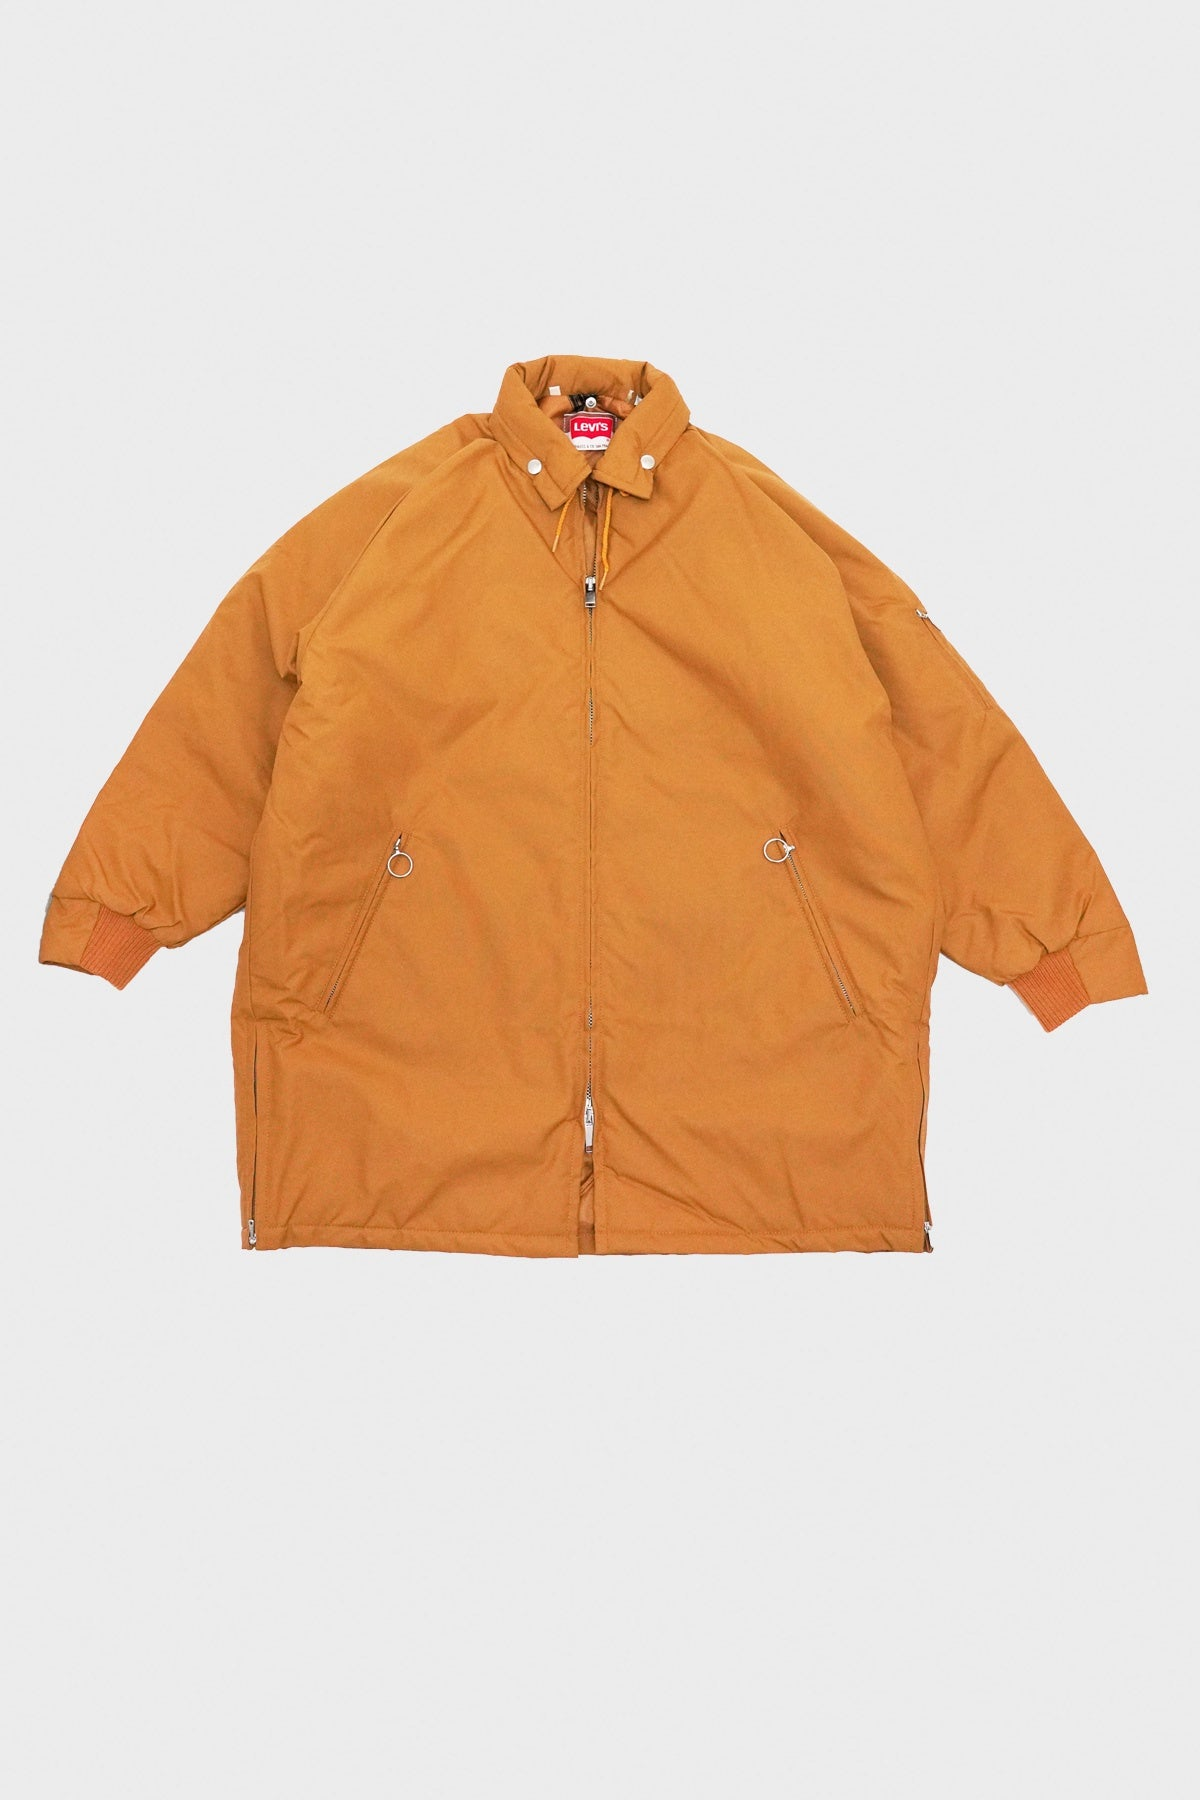 Levi's Vintage Clothing - Coaches Jacket - Wood Thrush - Canoe Club